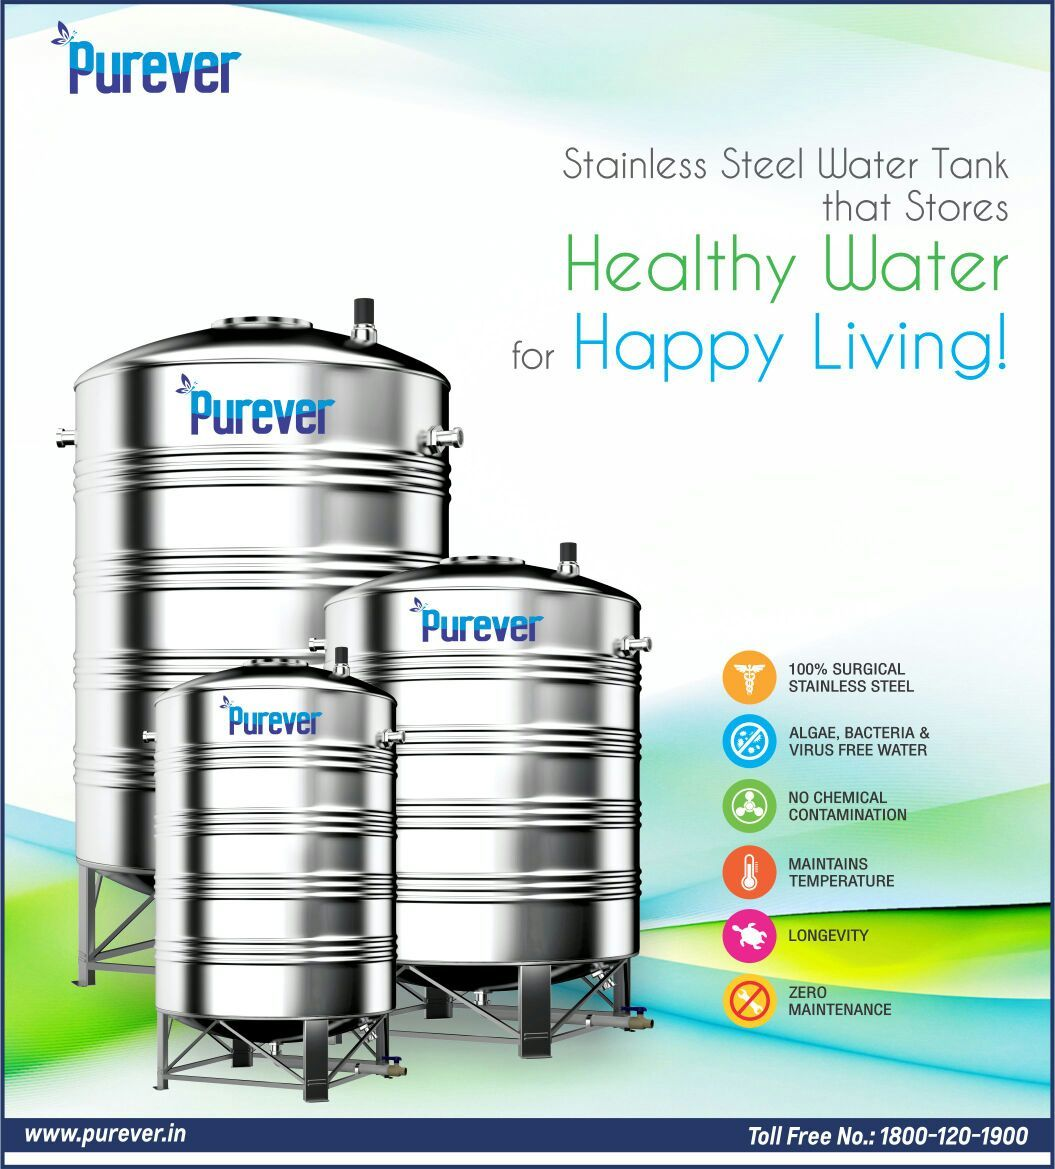 Stainless Steel Water Tank Stores Healthy Water And Healthy Living Switch To Purever Stainless Steel Water Tank Steel Water Tanks Healthy Water Water Tank